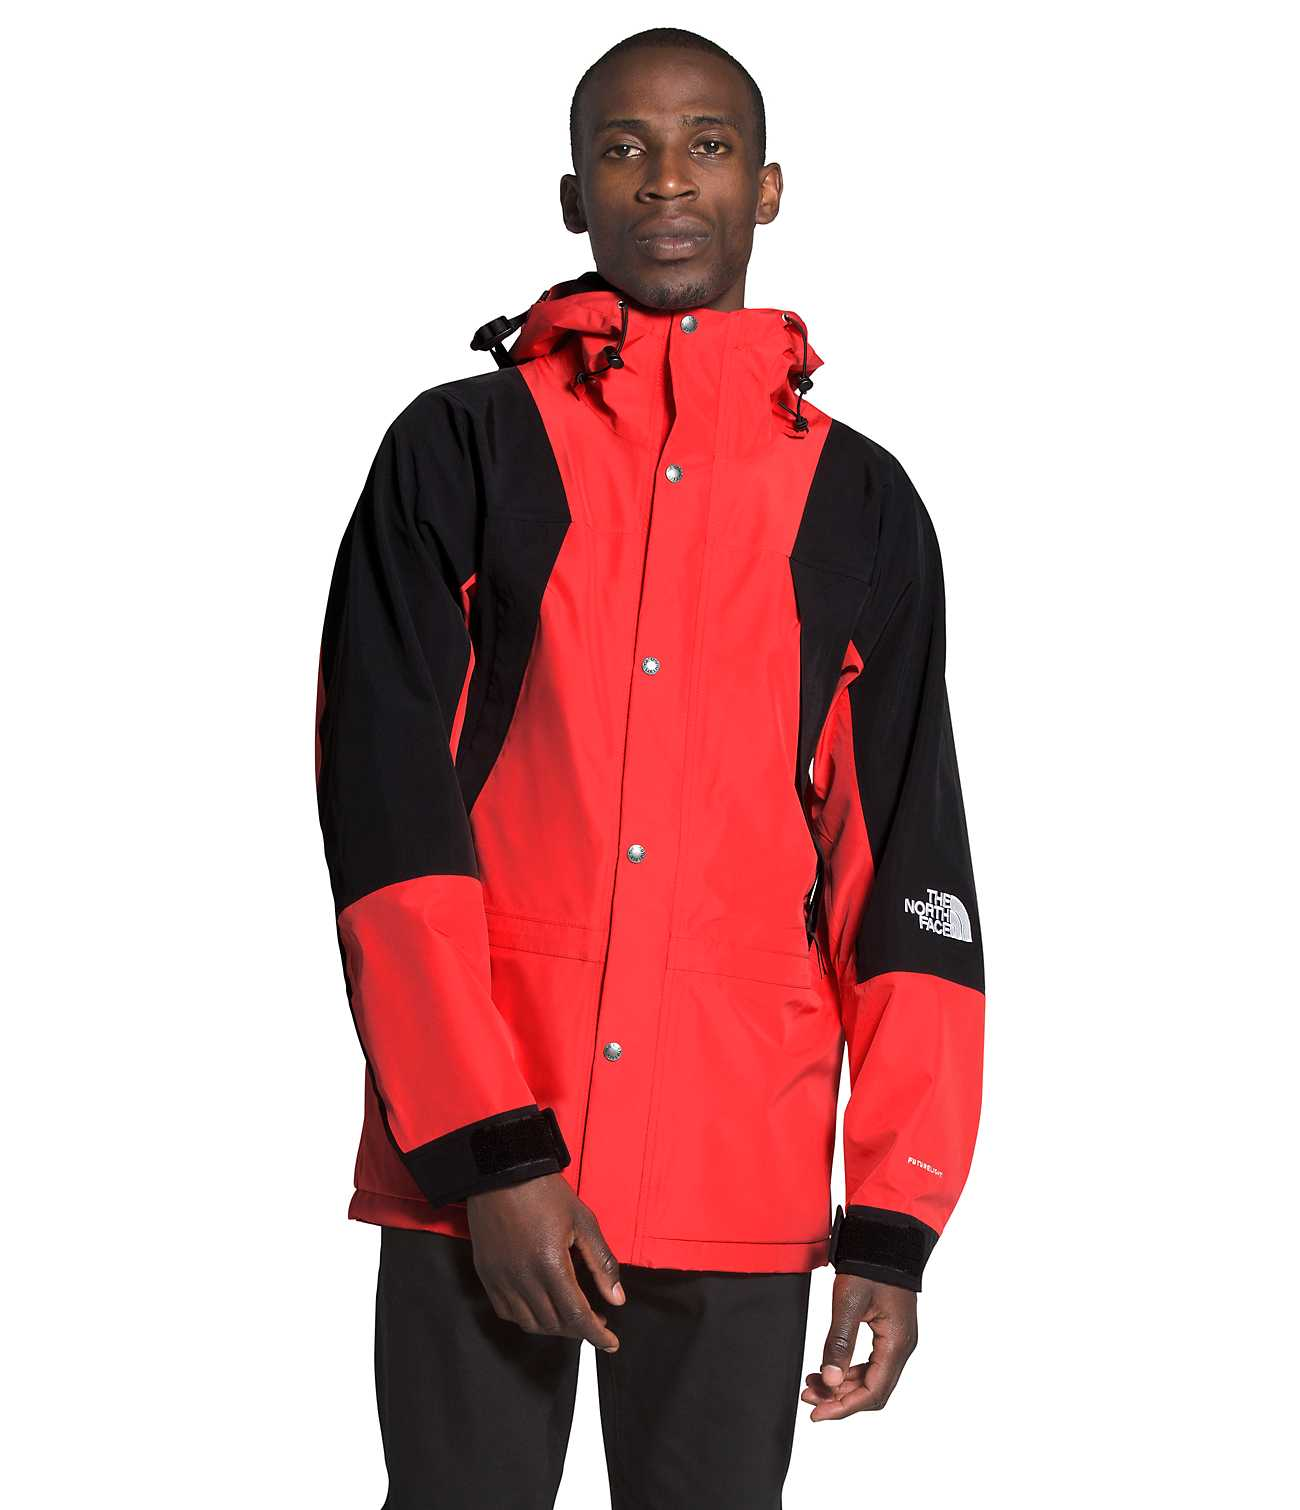 THE NORTH FACE M'S CASUAL JACKETS 1994 RETRO MOUNTAIN LIGHT FUTURELIGHT JACKET